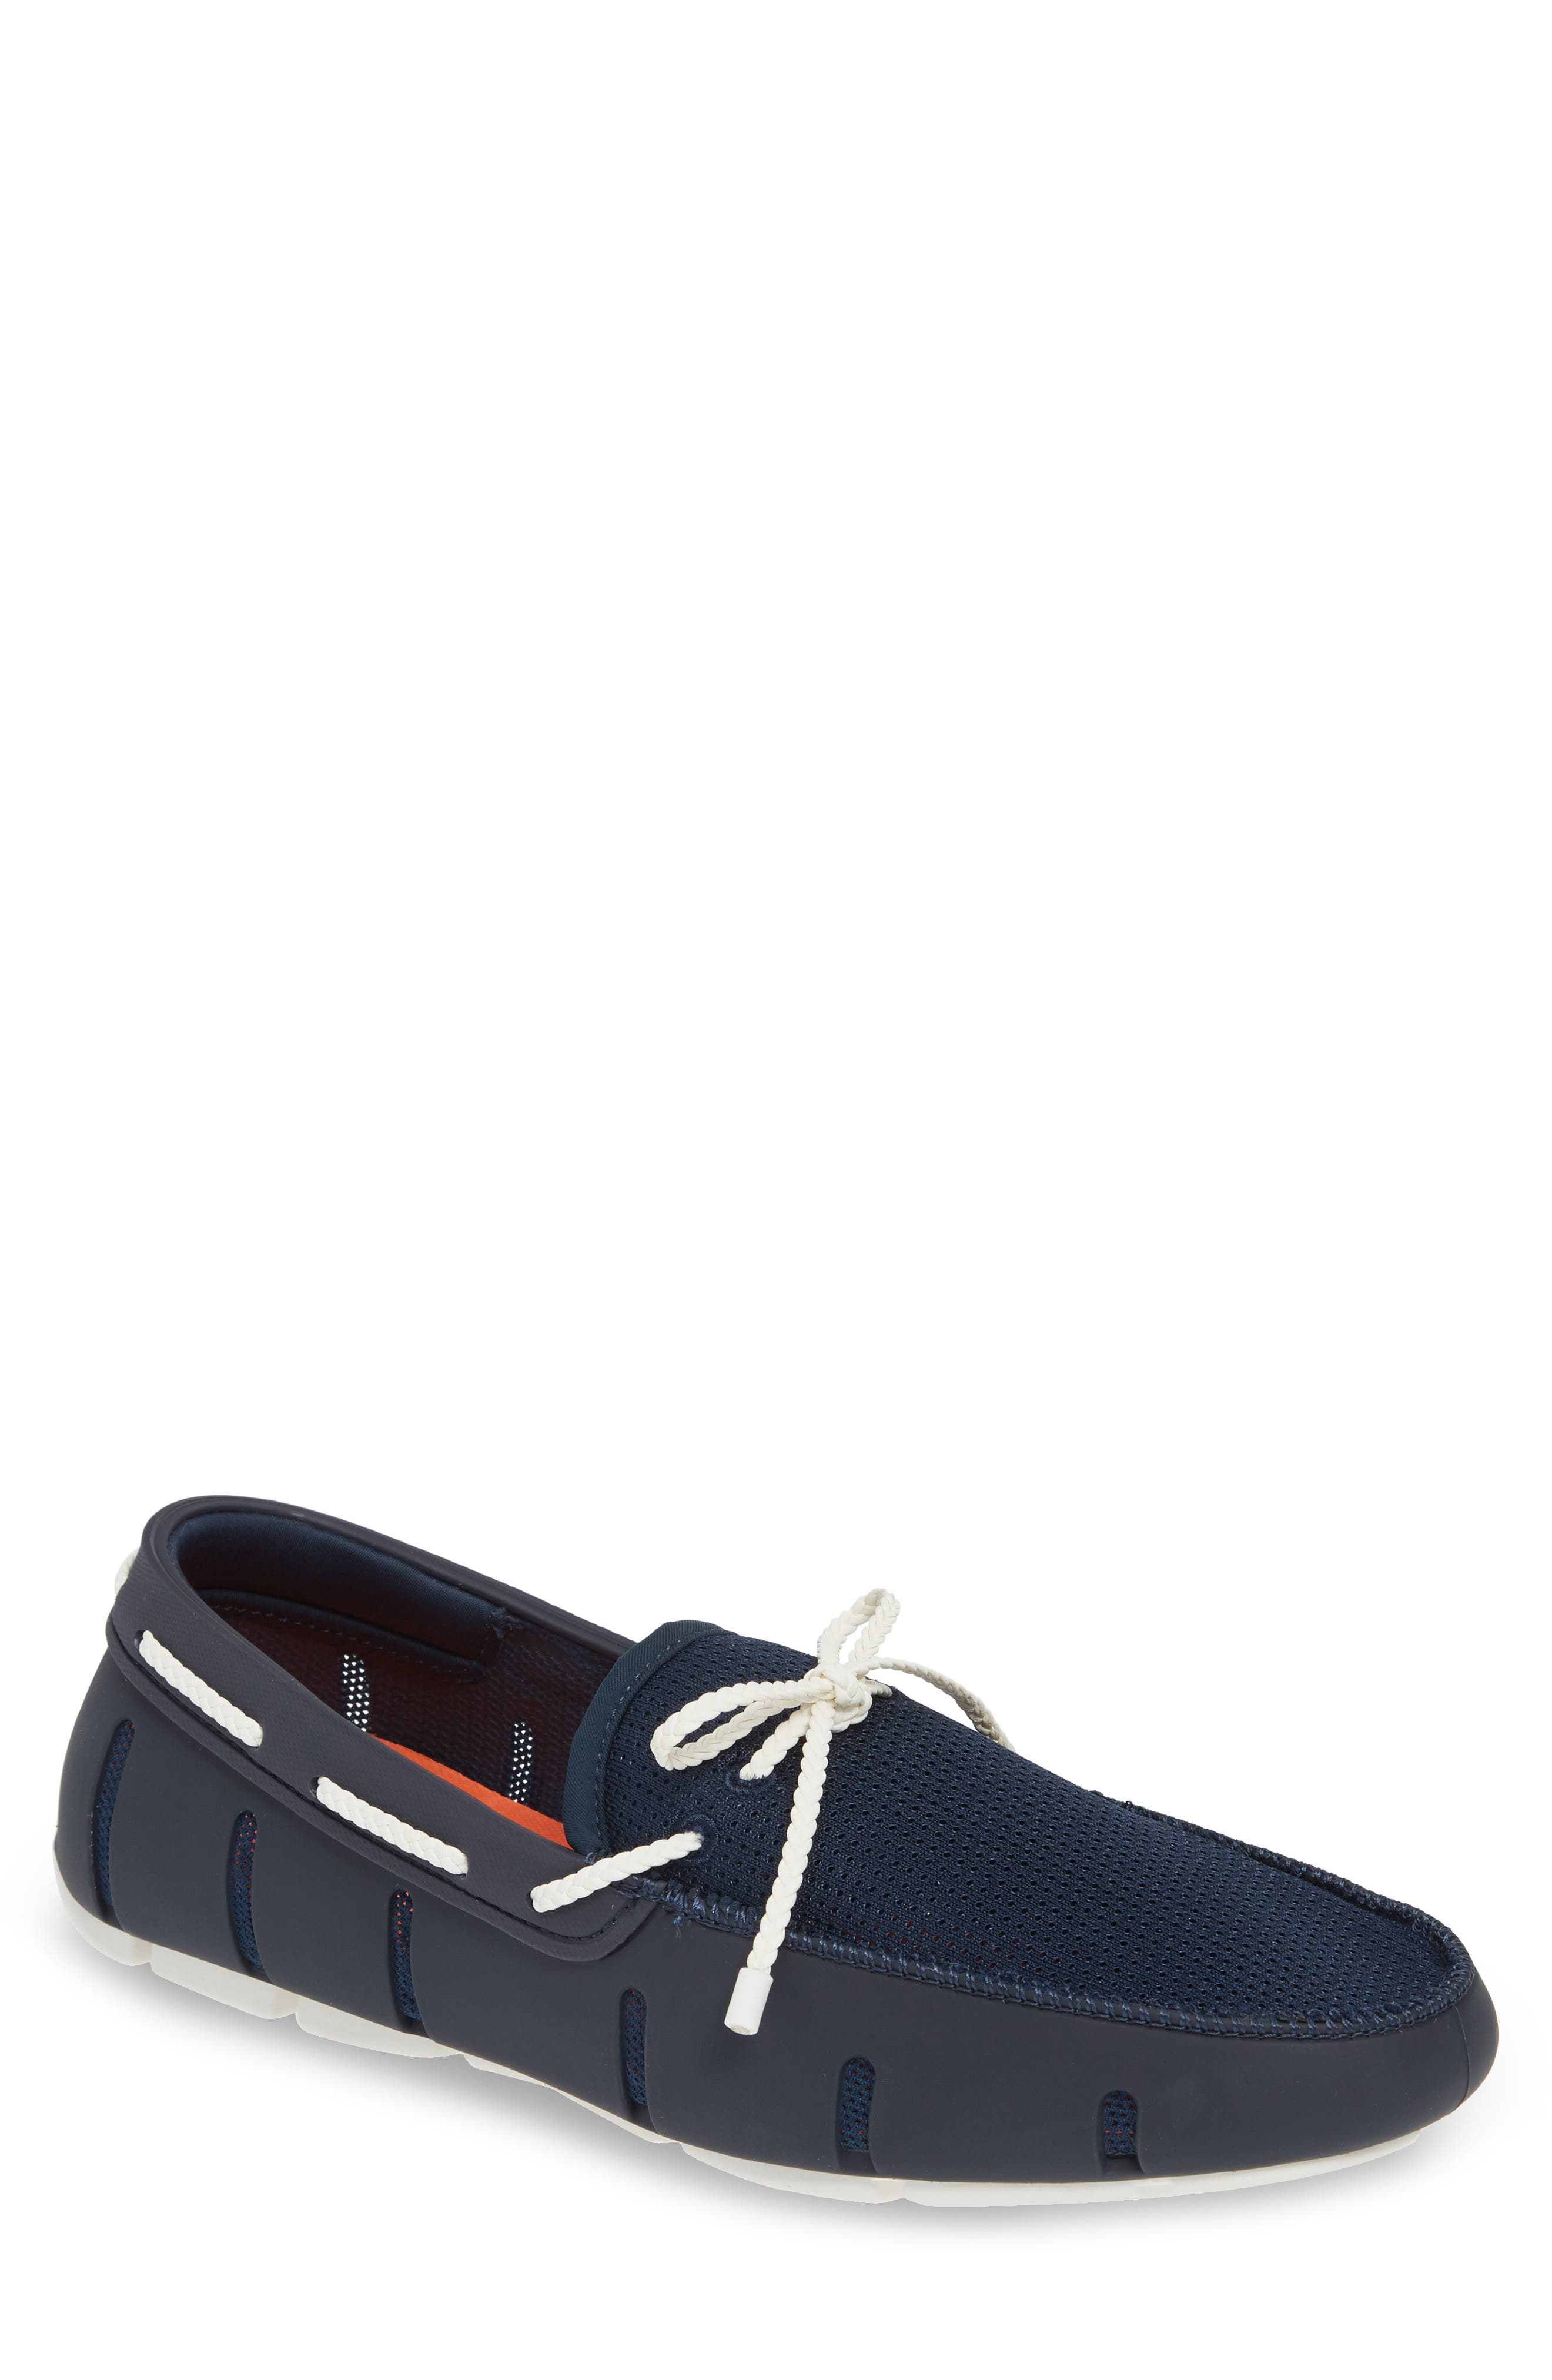 SWIMS Lace Loafer, Main, color, DARK NAVY/ WHITE